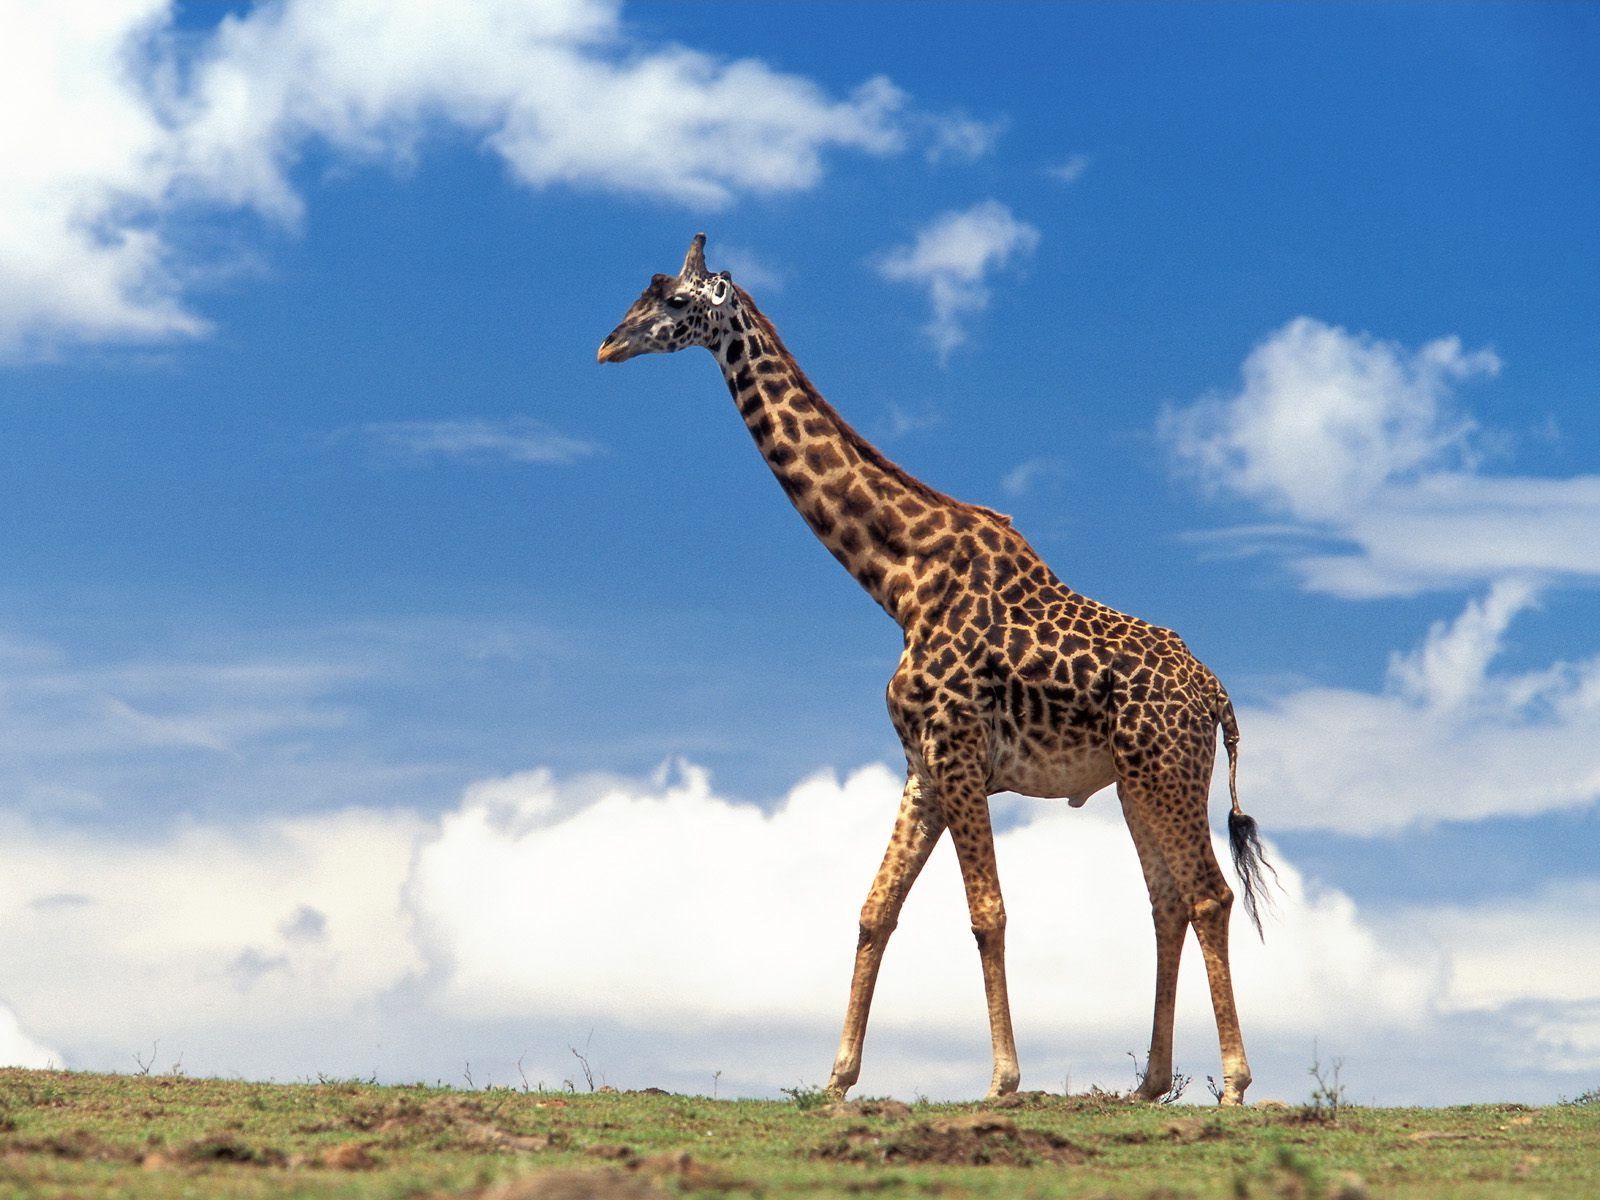 http://2.bp.blogspot.com/-yjwRGJ30jZQ/UCM_LSFK9PI/AAAAAAAAHlA/QIxSScUeESE/s1600/Giraffe+Animal+Behavior+Big+Desktop216.jpg